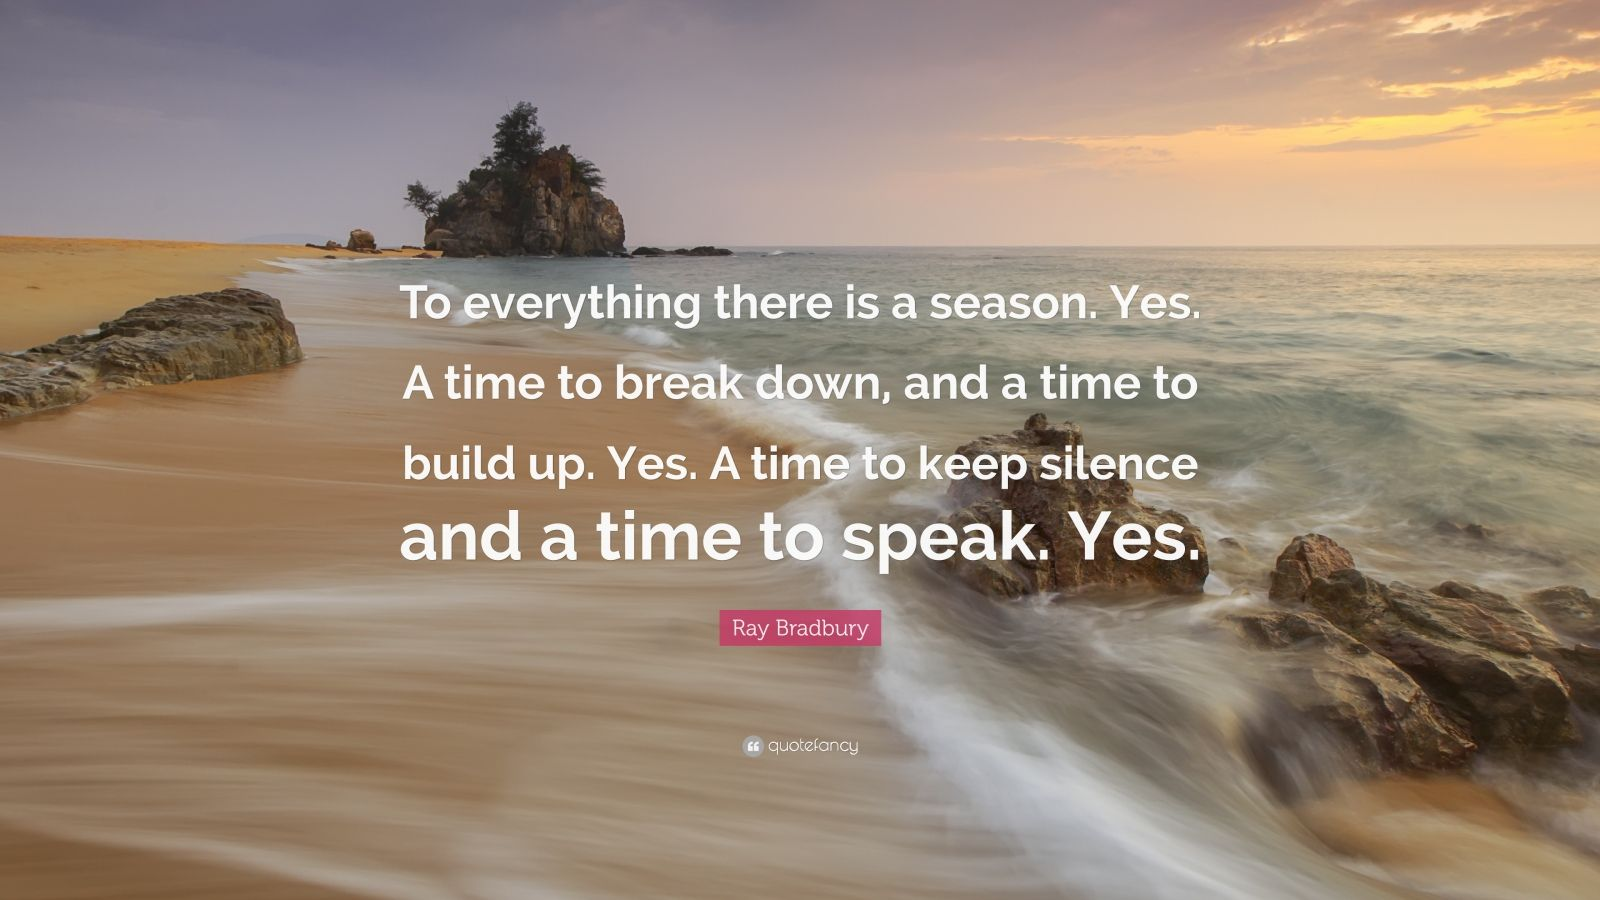 """Ray Bradbury Quote: """"To everything there is a season. Yes. A time to break down, and a time to build up. Yes. A time to keep silence and a time to speak. Yes."""""""